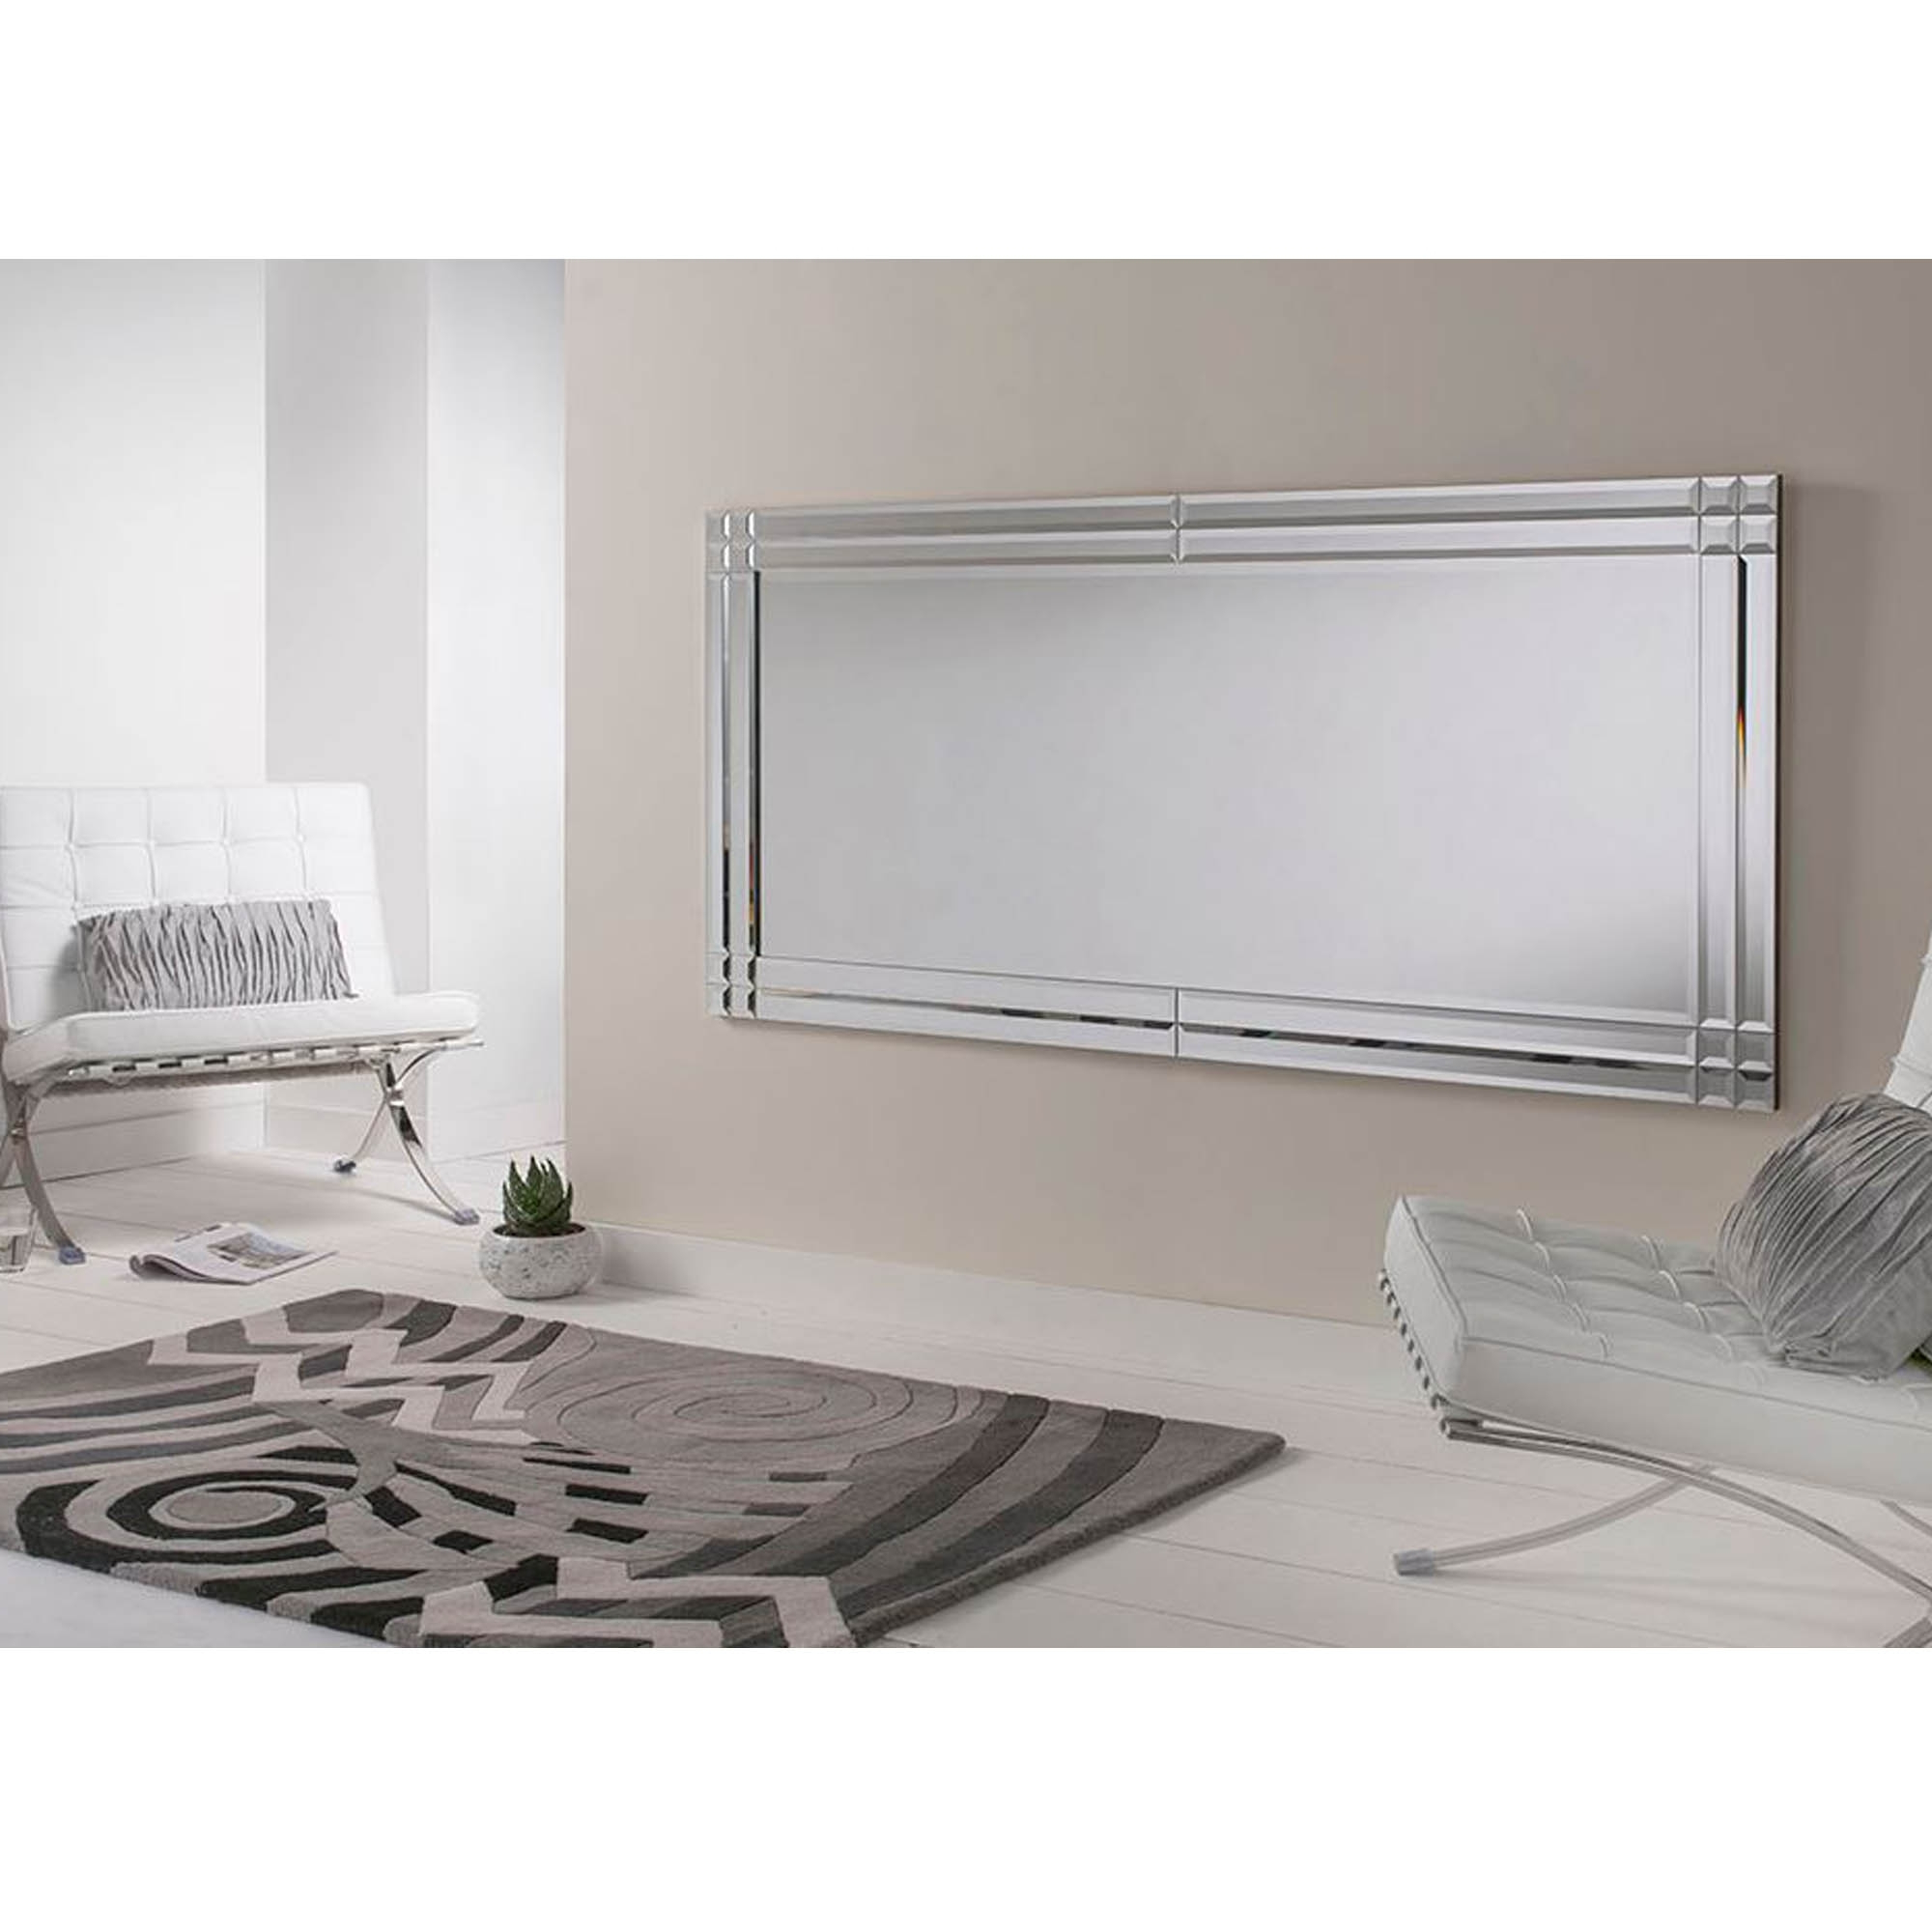 Large Bevelled Rectangular Wall Mirror Regarding Trendy Glass Wall Mirrors (View 17 of 20)